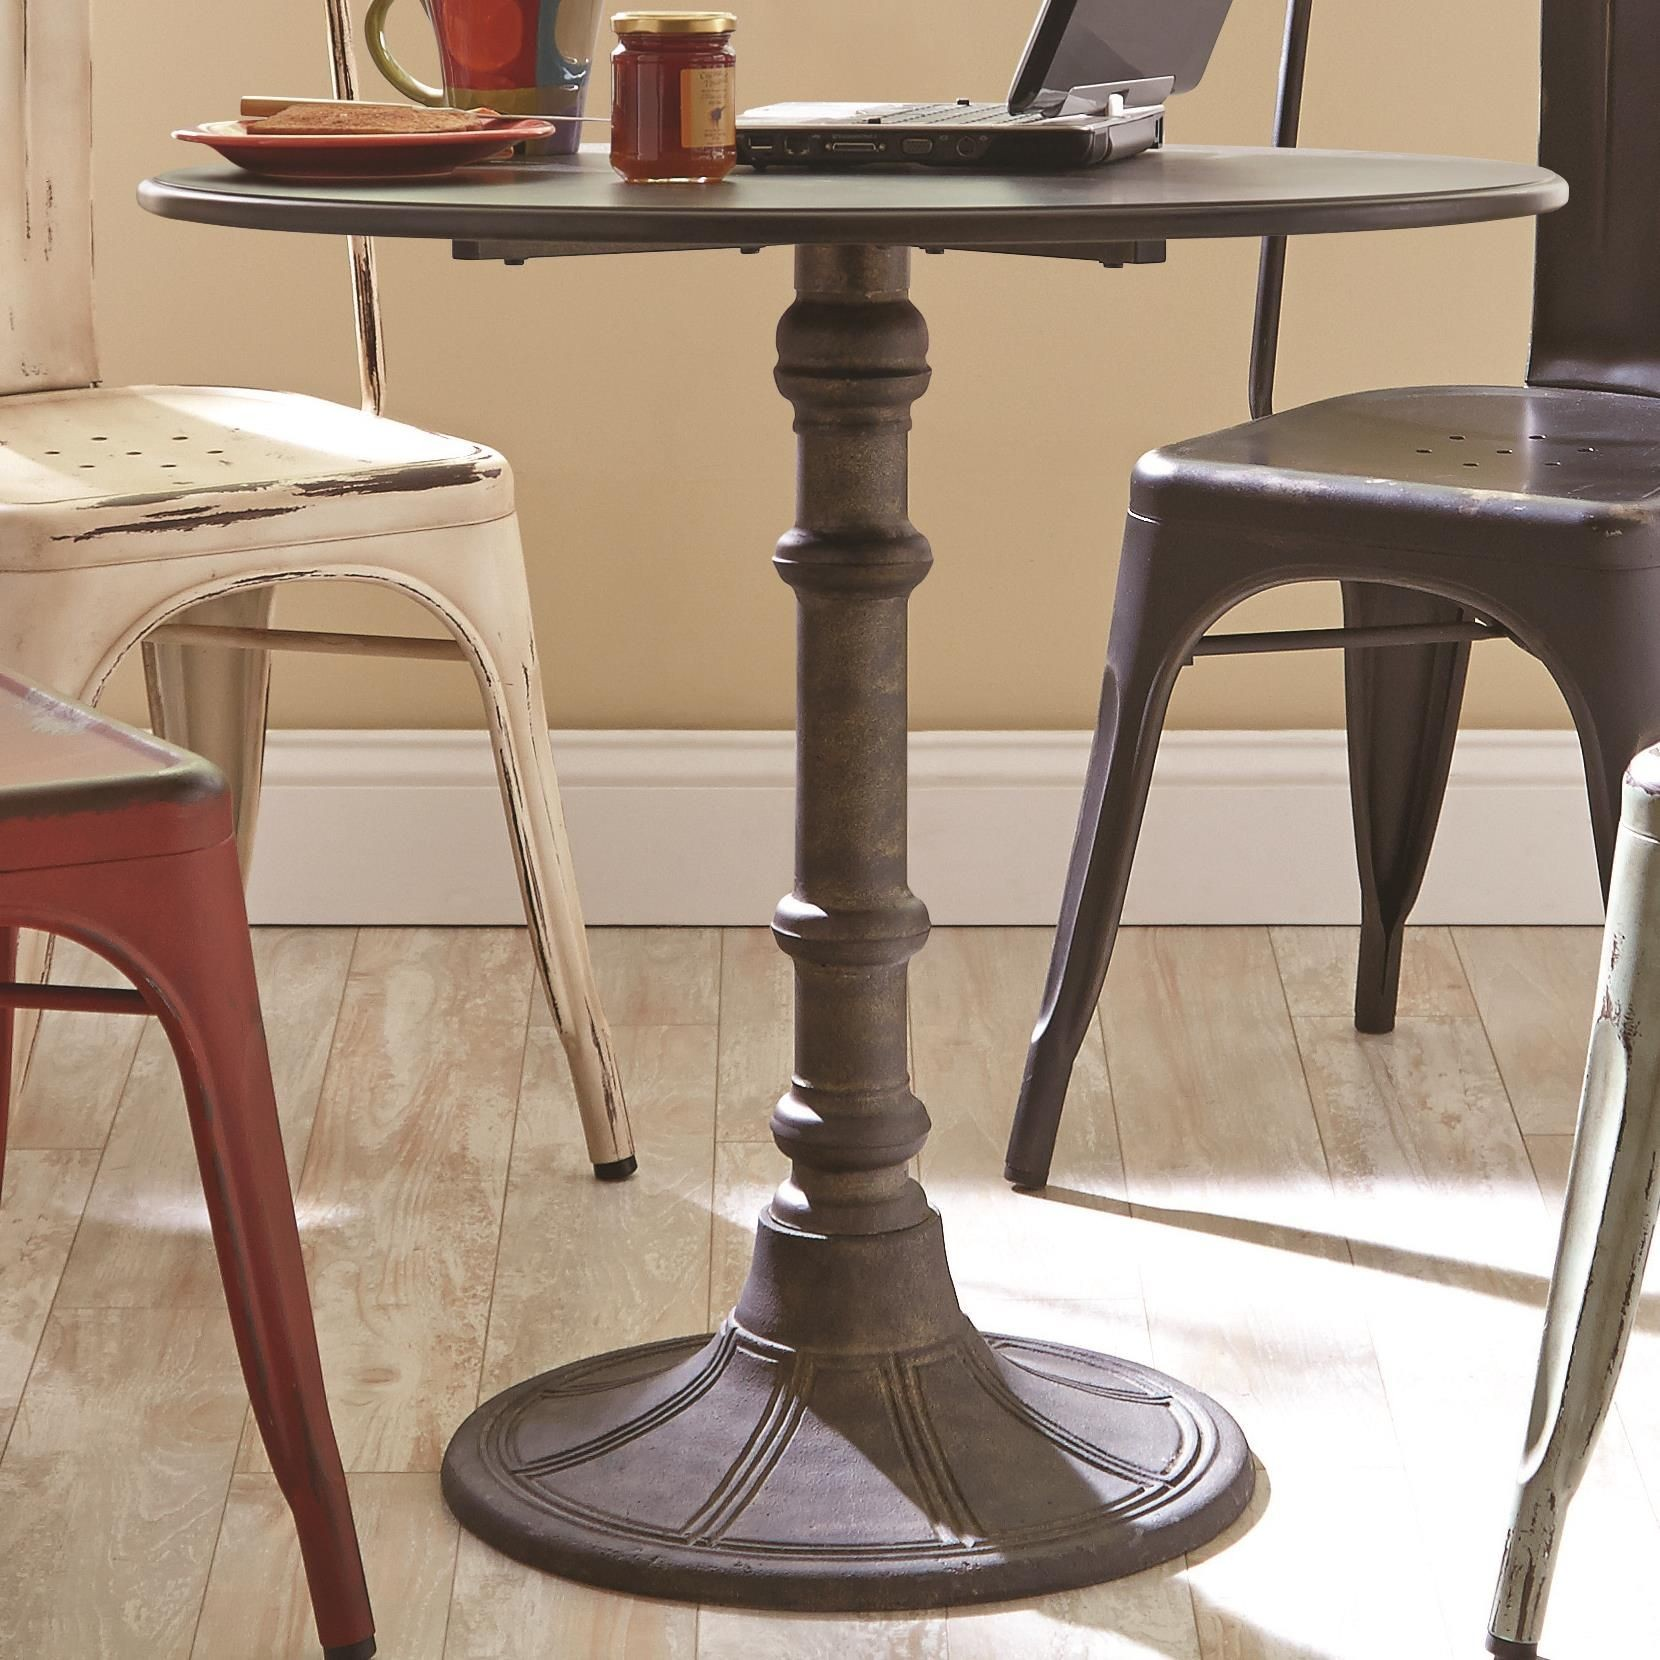 Oswego Industrial Round Bistro Pedestal Dining Table from Coaster (100063) | Coleman Furniture